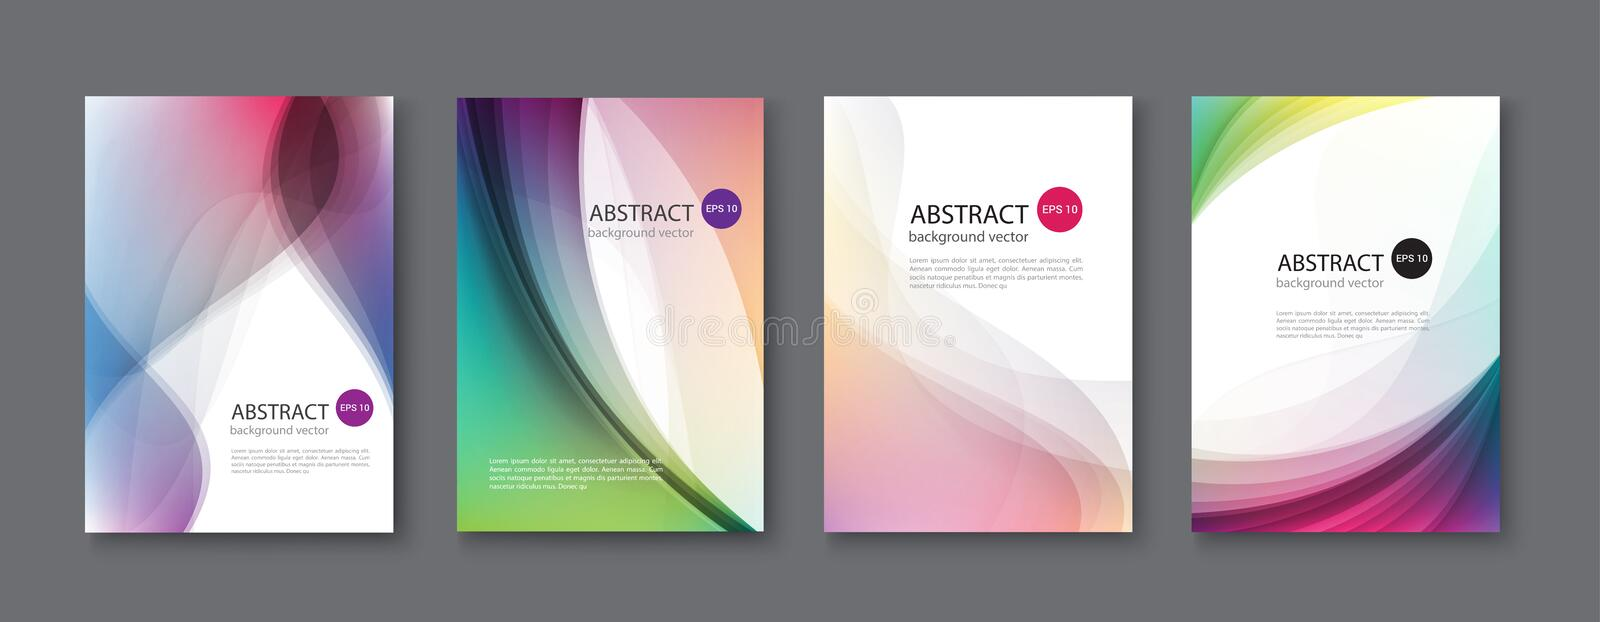 Set of abstract vector backgrounds with line waves.Vector illustration. stock illustration